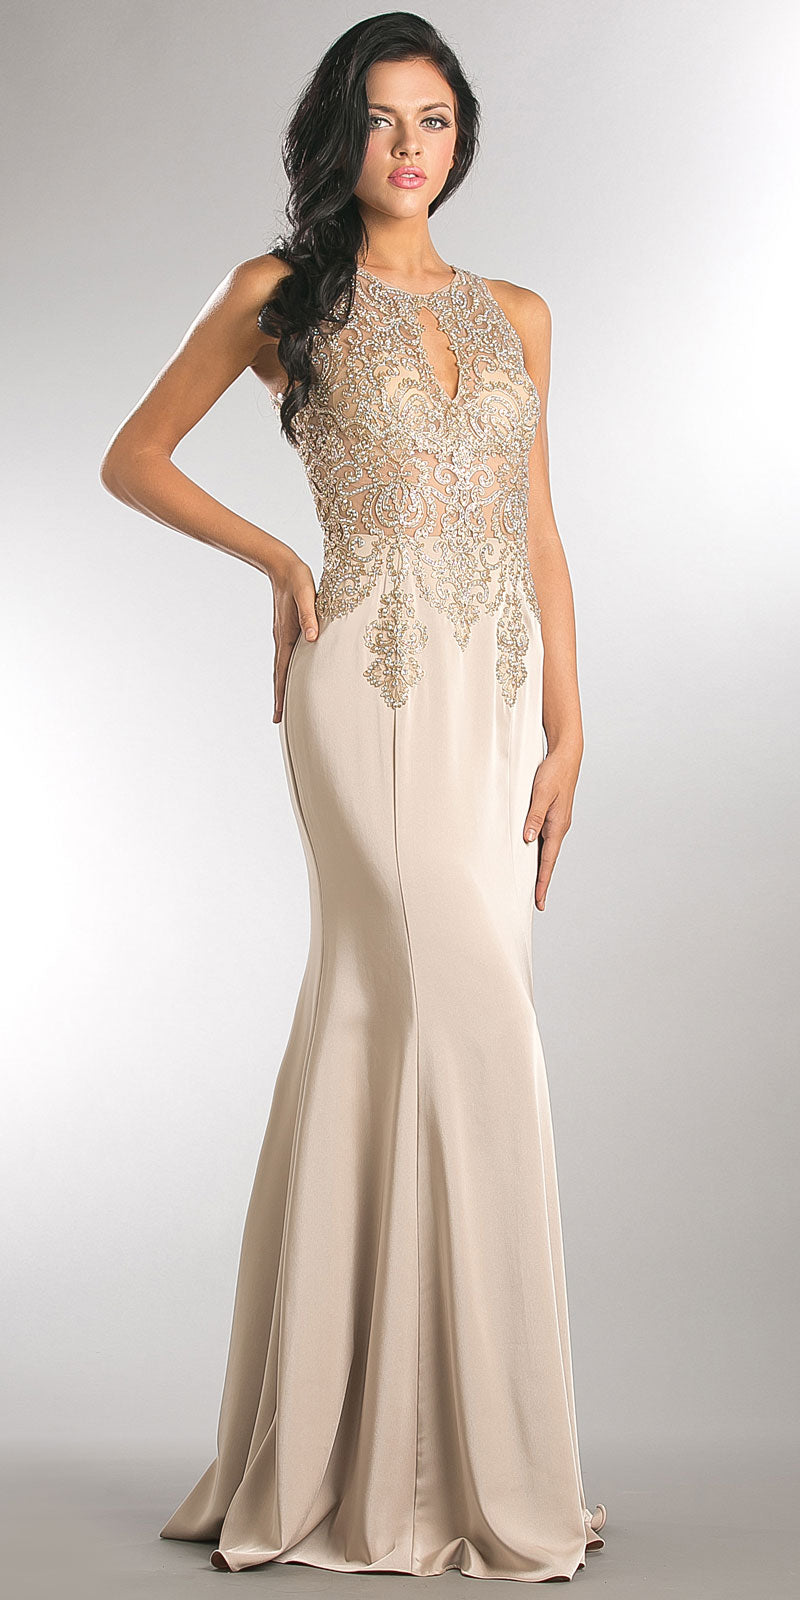 Image of Exquisite Lace Bodice Long Formal Evening Dress in Champaign